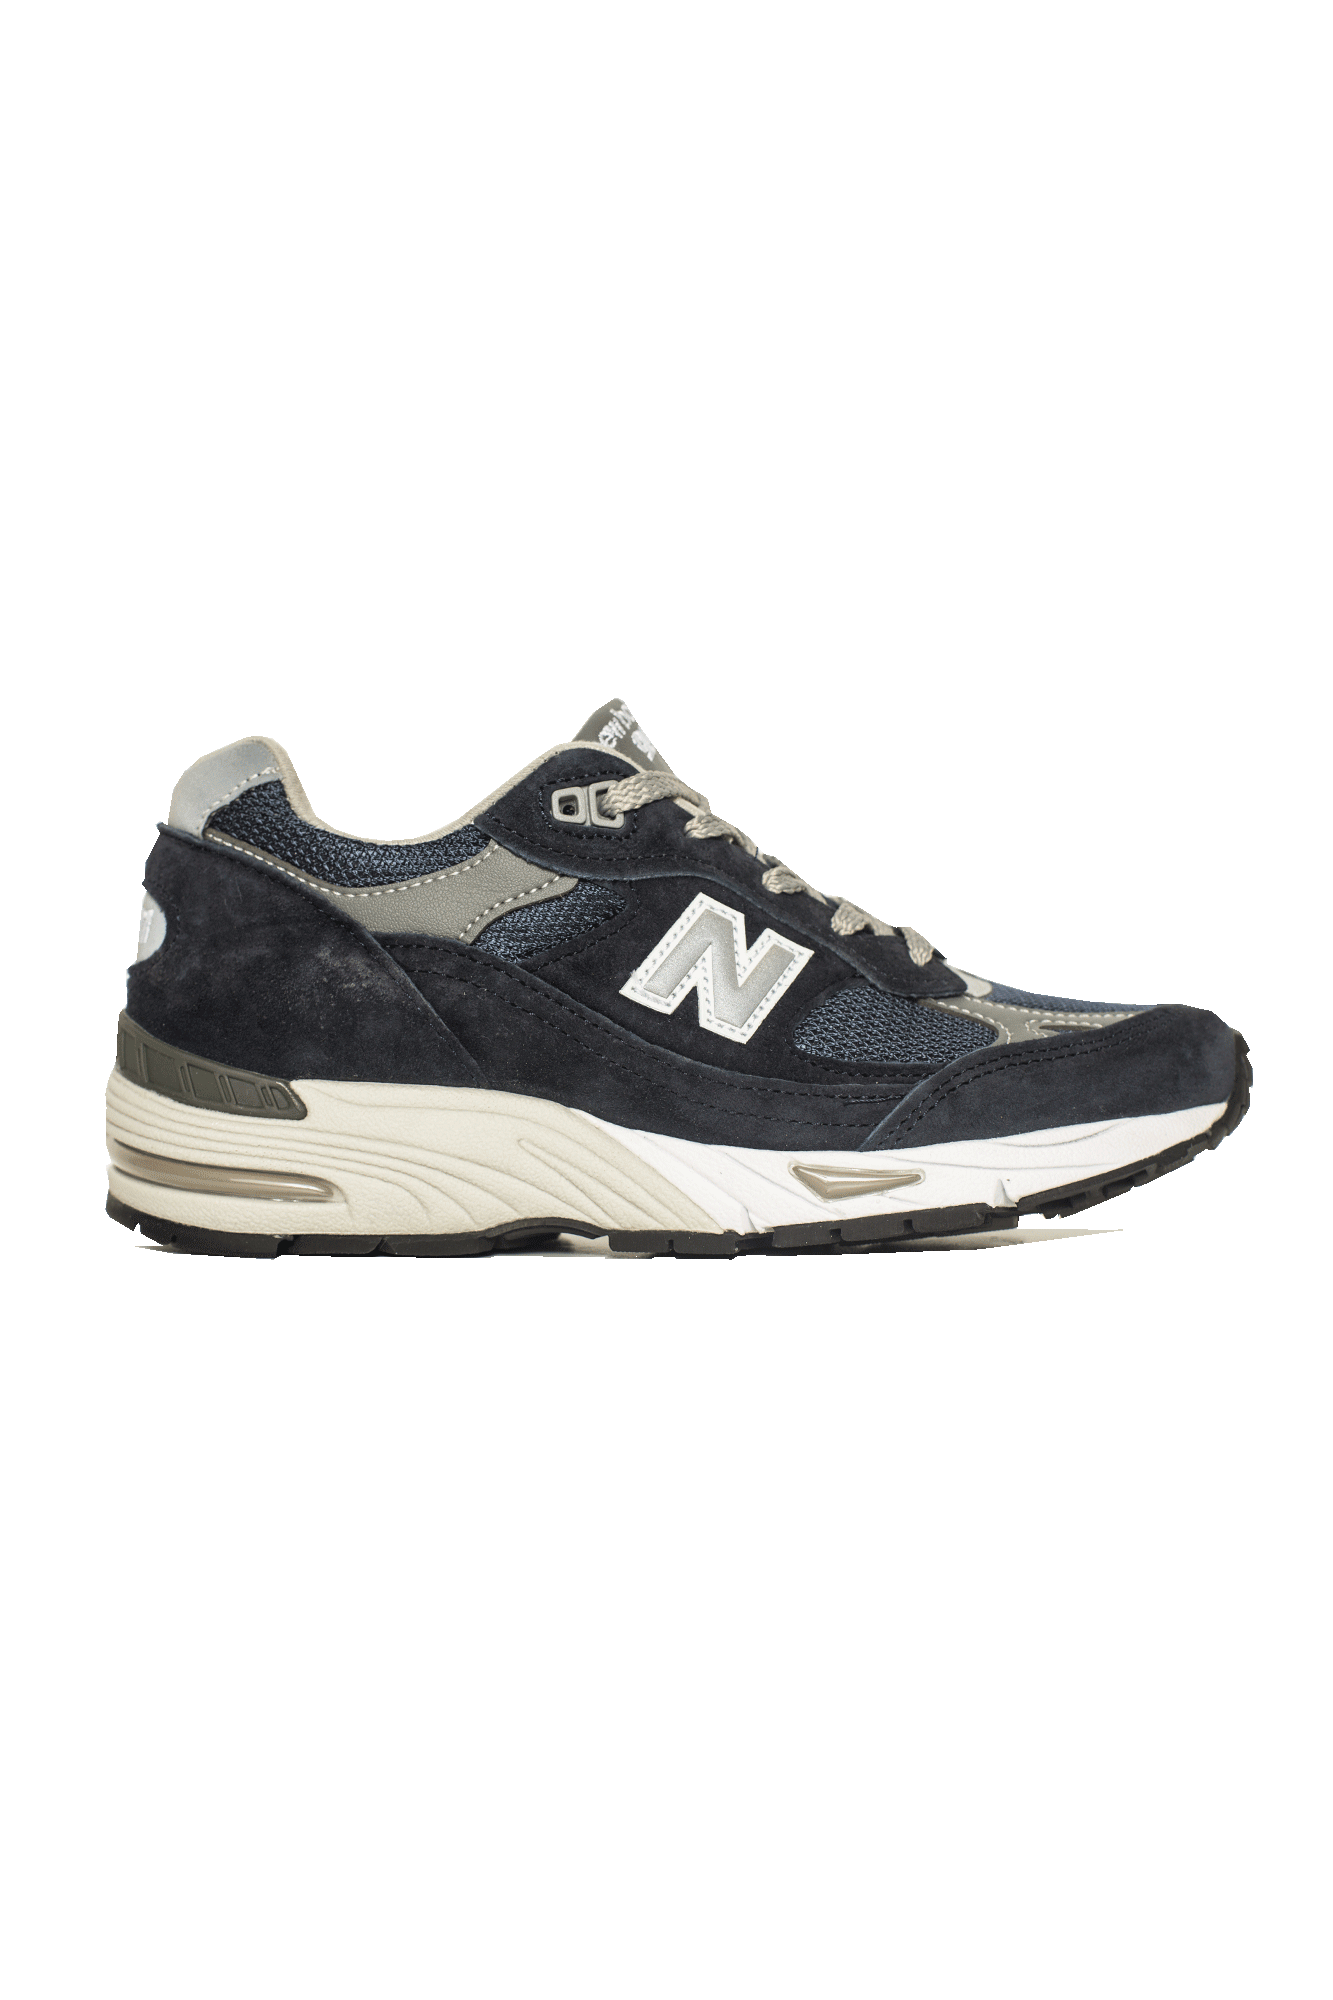 New Balance Sneakers 991 Blu W991NV#000#C0007#6 - One Block Down